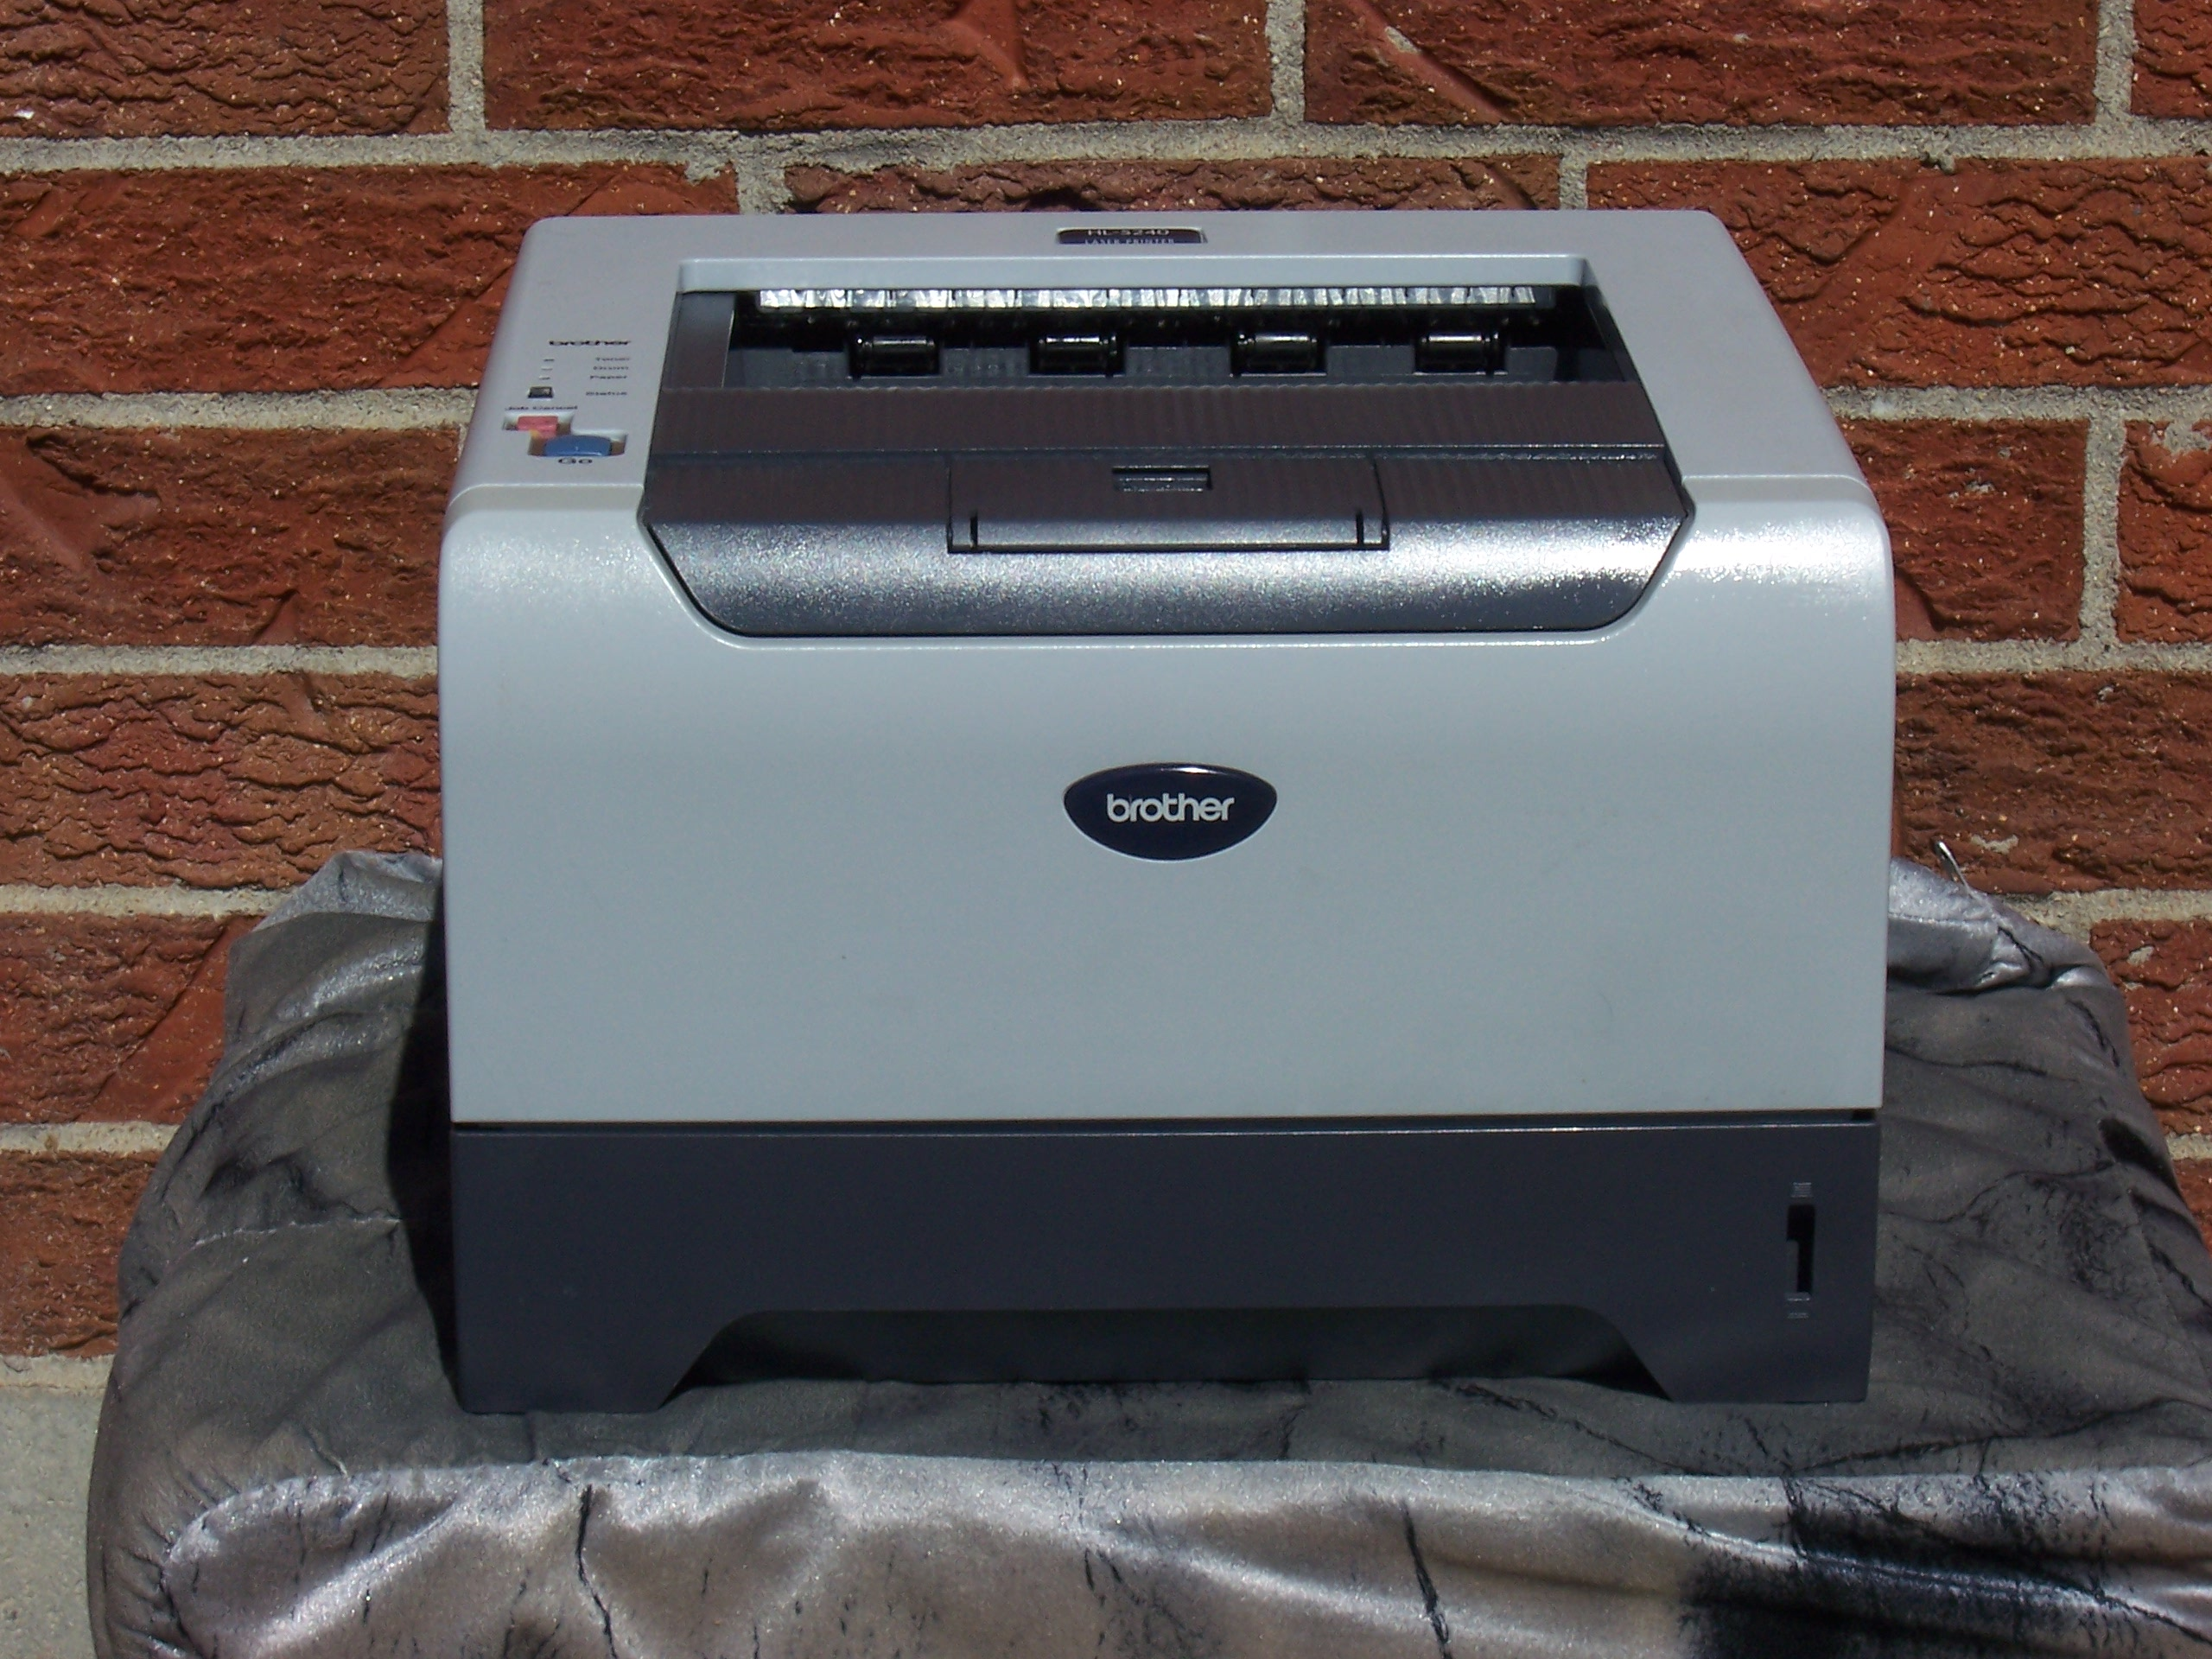 BROTHER HL 5240 PRINTER WINDOWS 8 X64 DRIVER DOWNLOAD